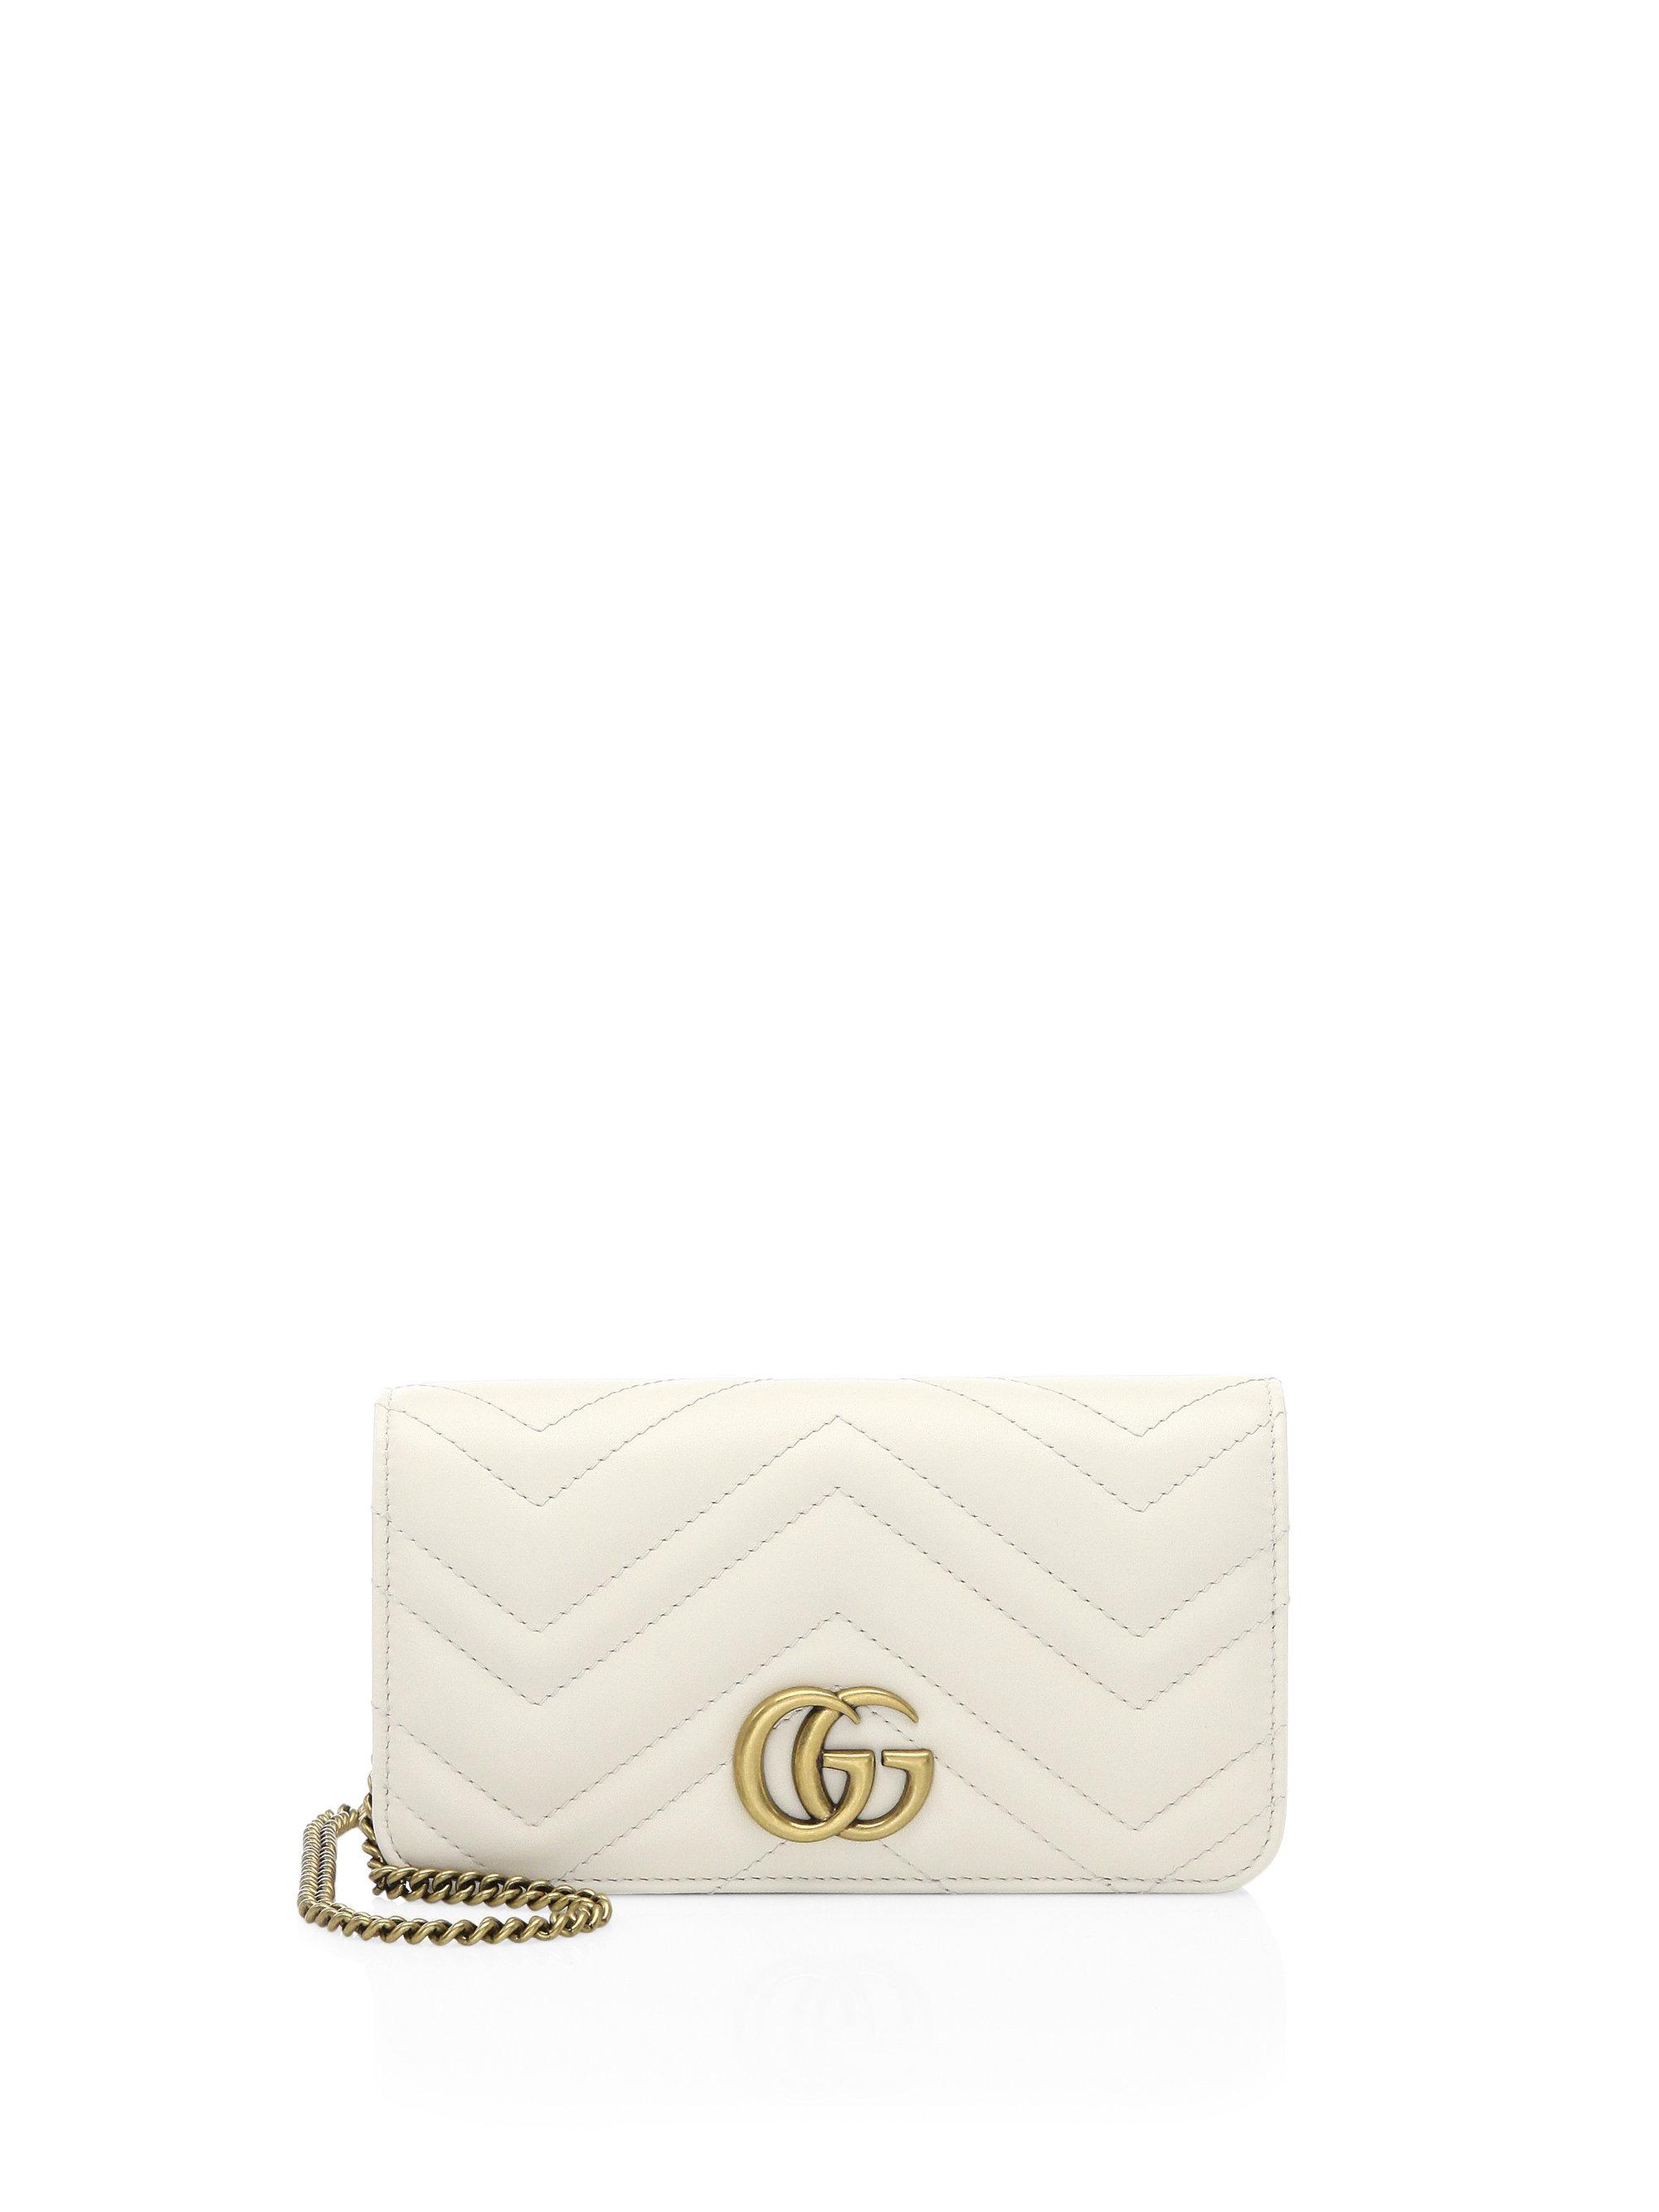 38bc89c5b Gucci Marmont 2.0 Leather Crossbody Bag in White - Lyst